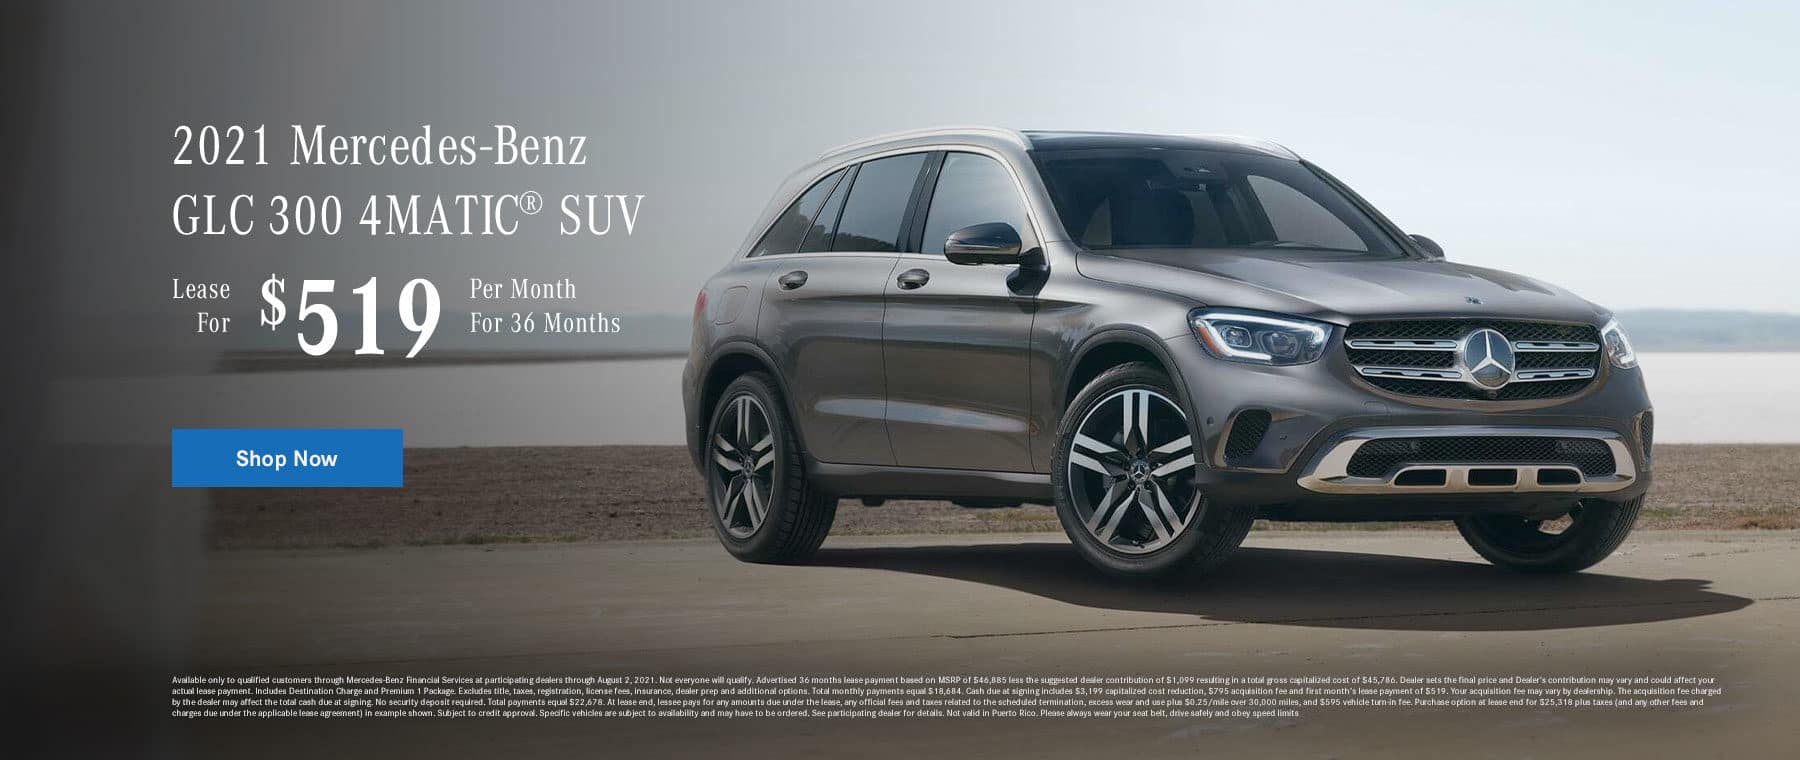 2021 Mercedes-Benz GLC 300 4MATIC® SUV, Lease for $519 Per Month for 36 Months